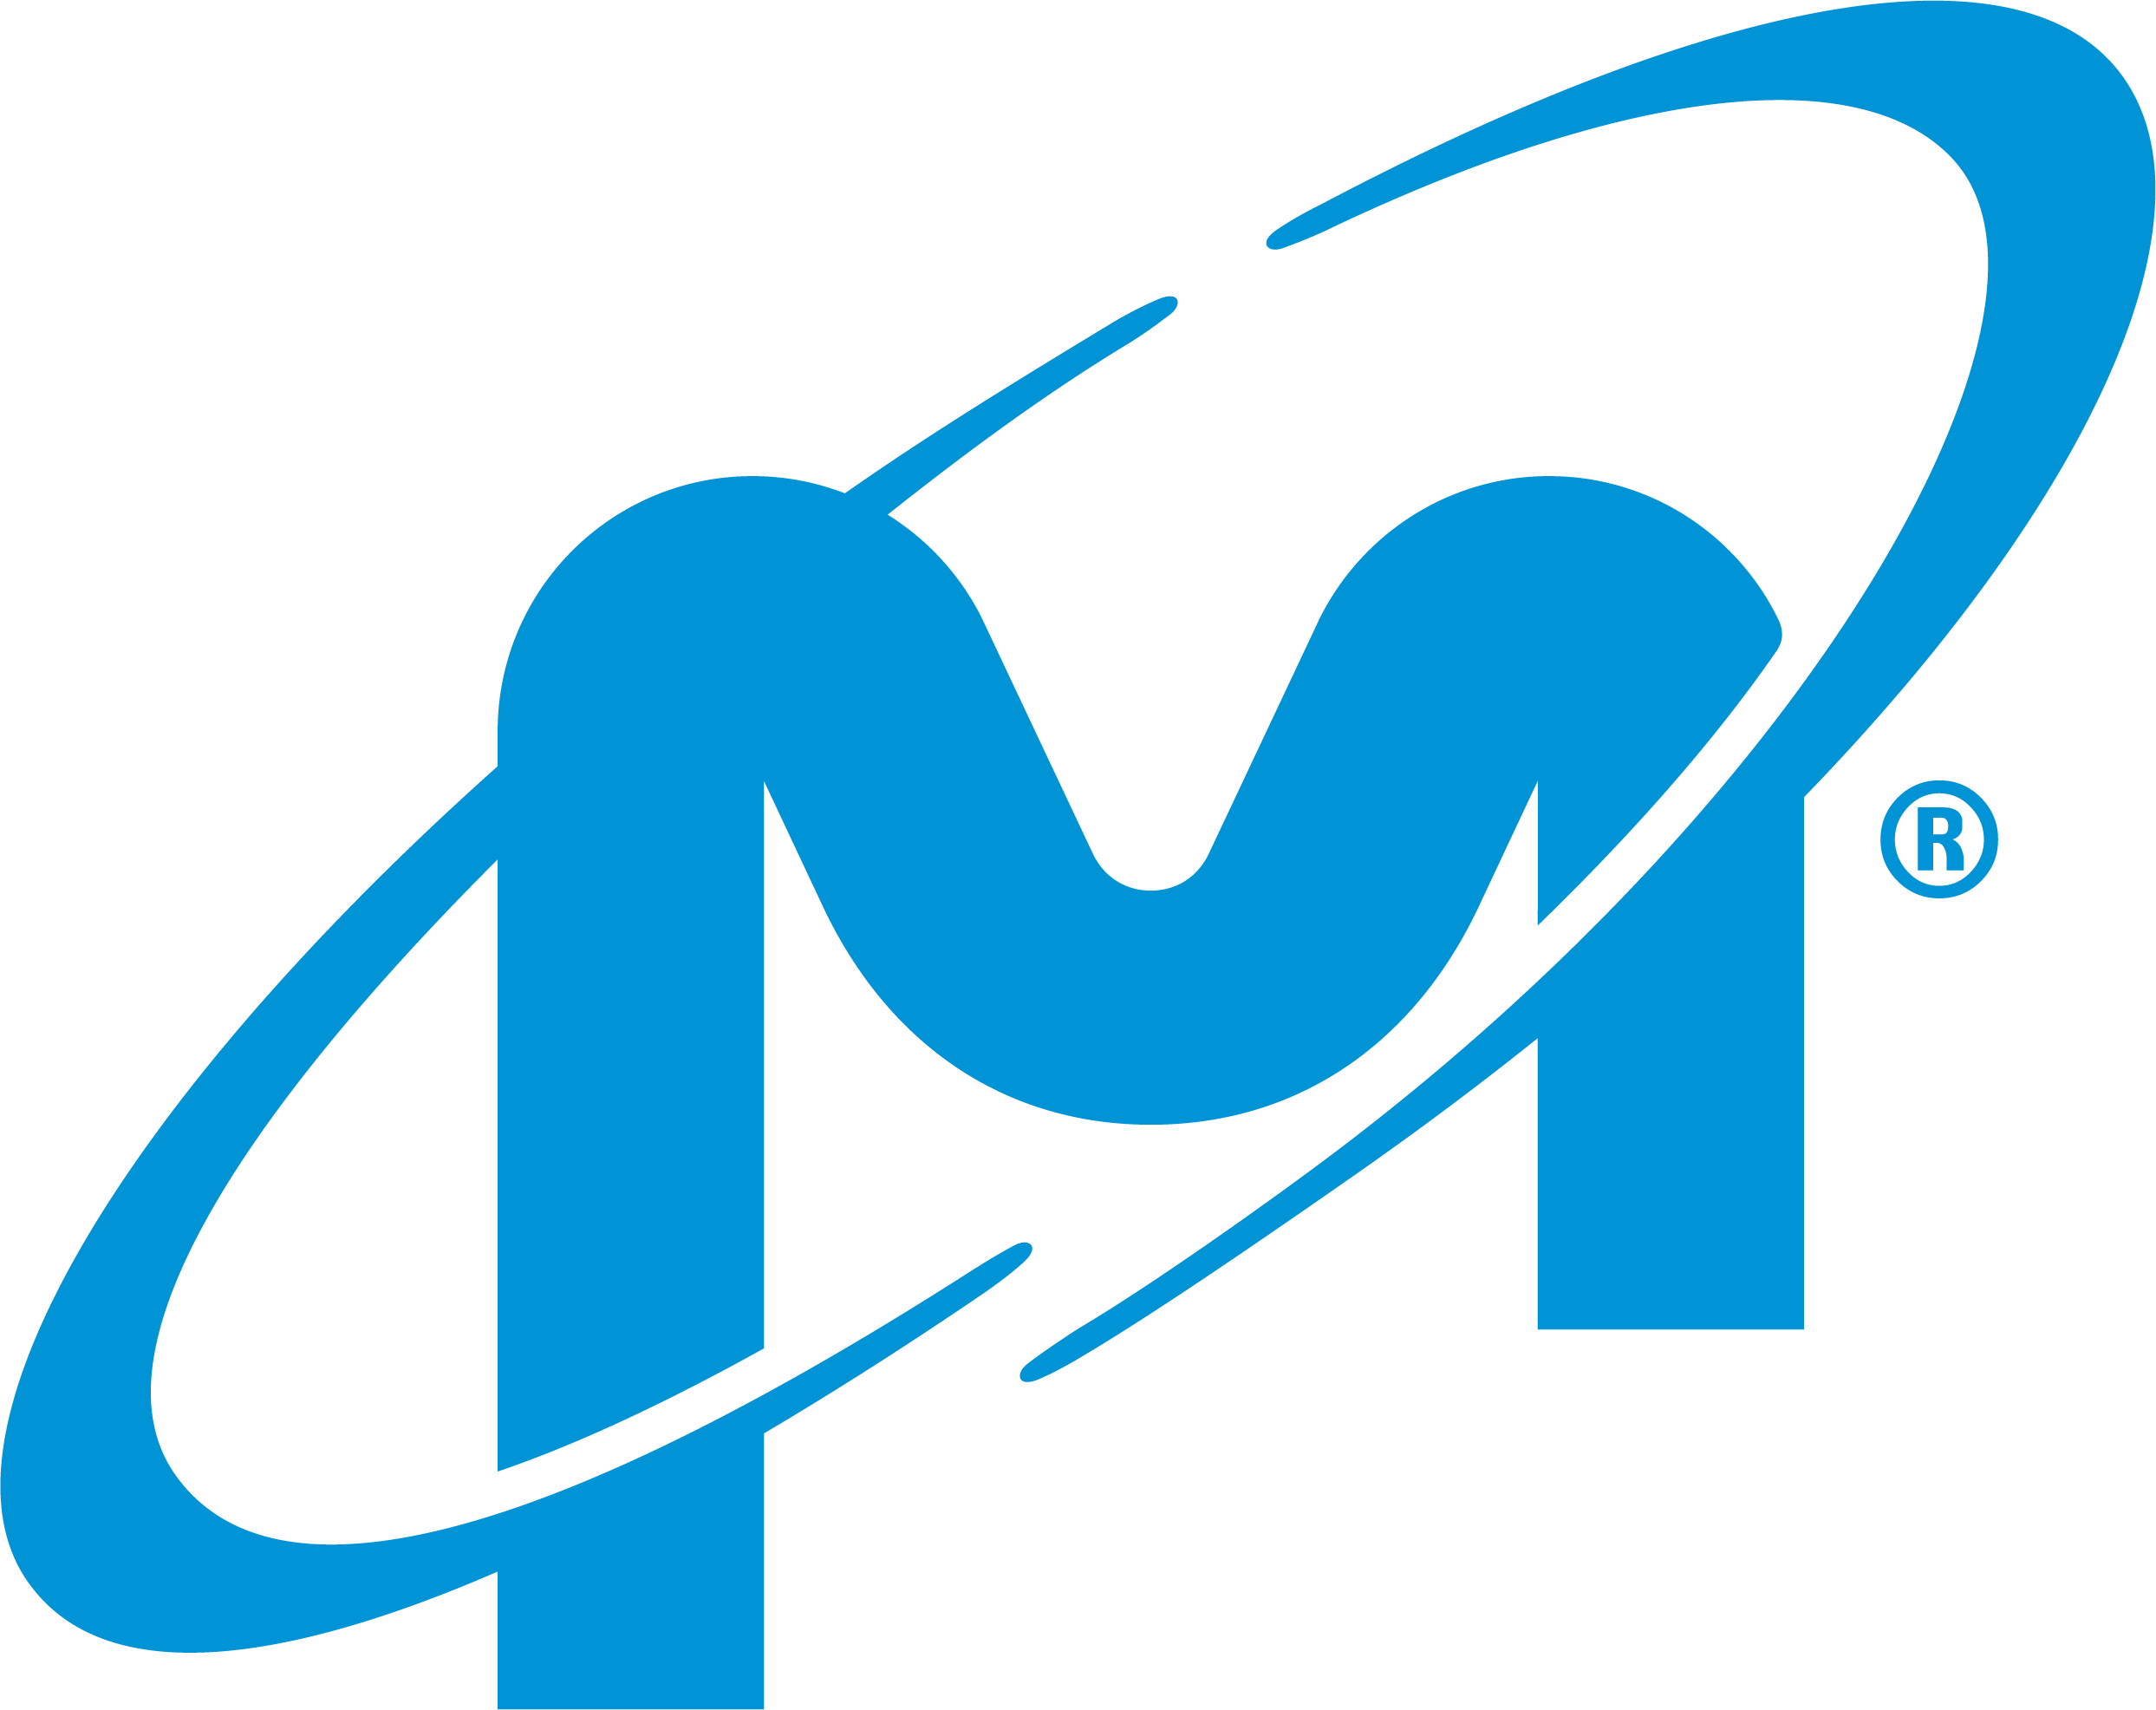 Micron blue M encircled with slanted blue line